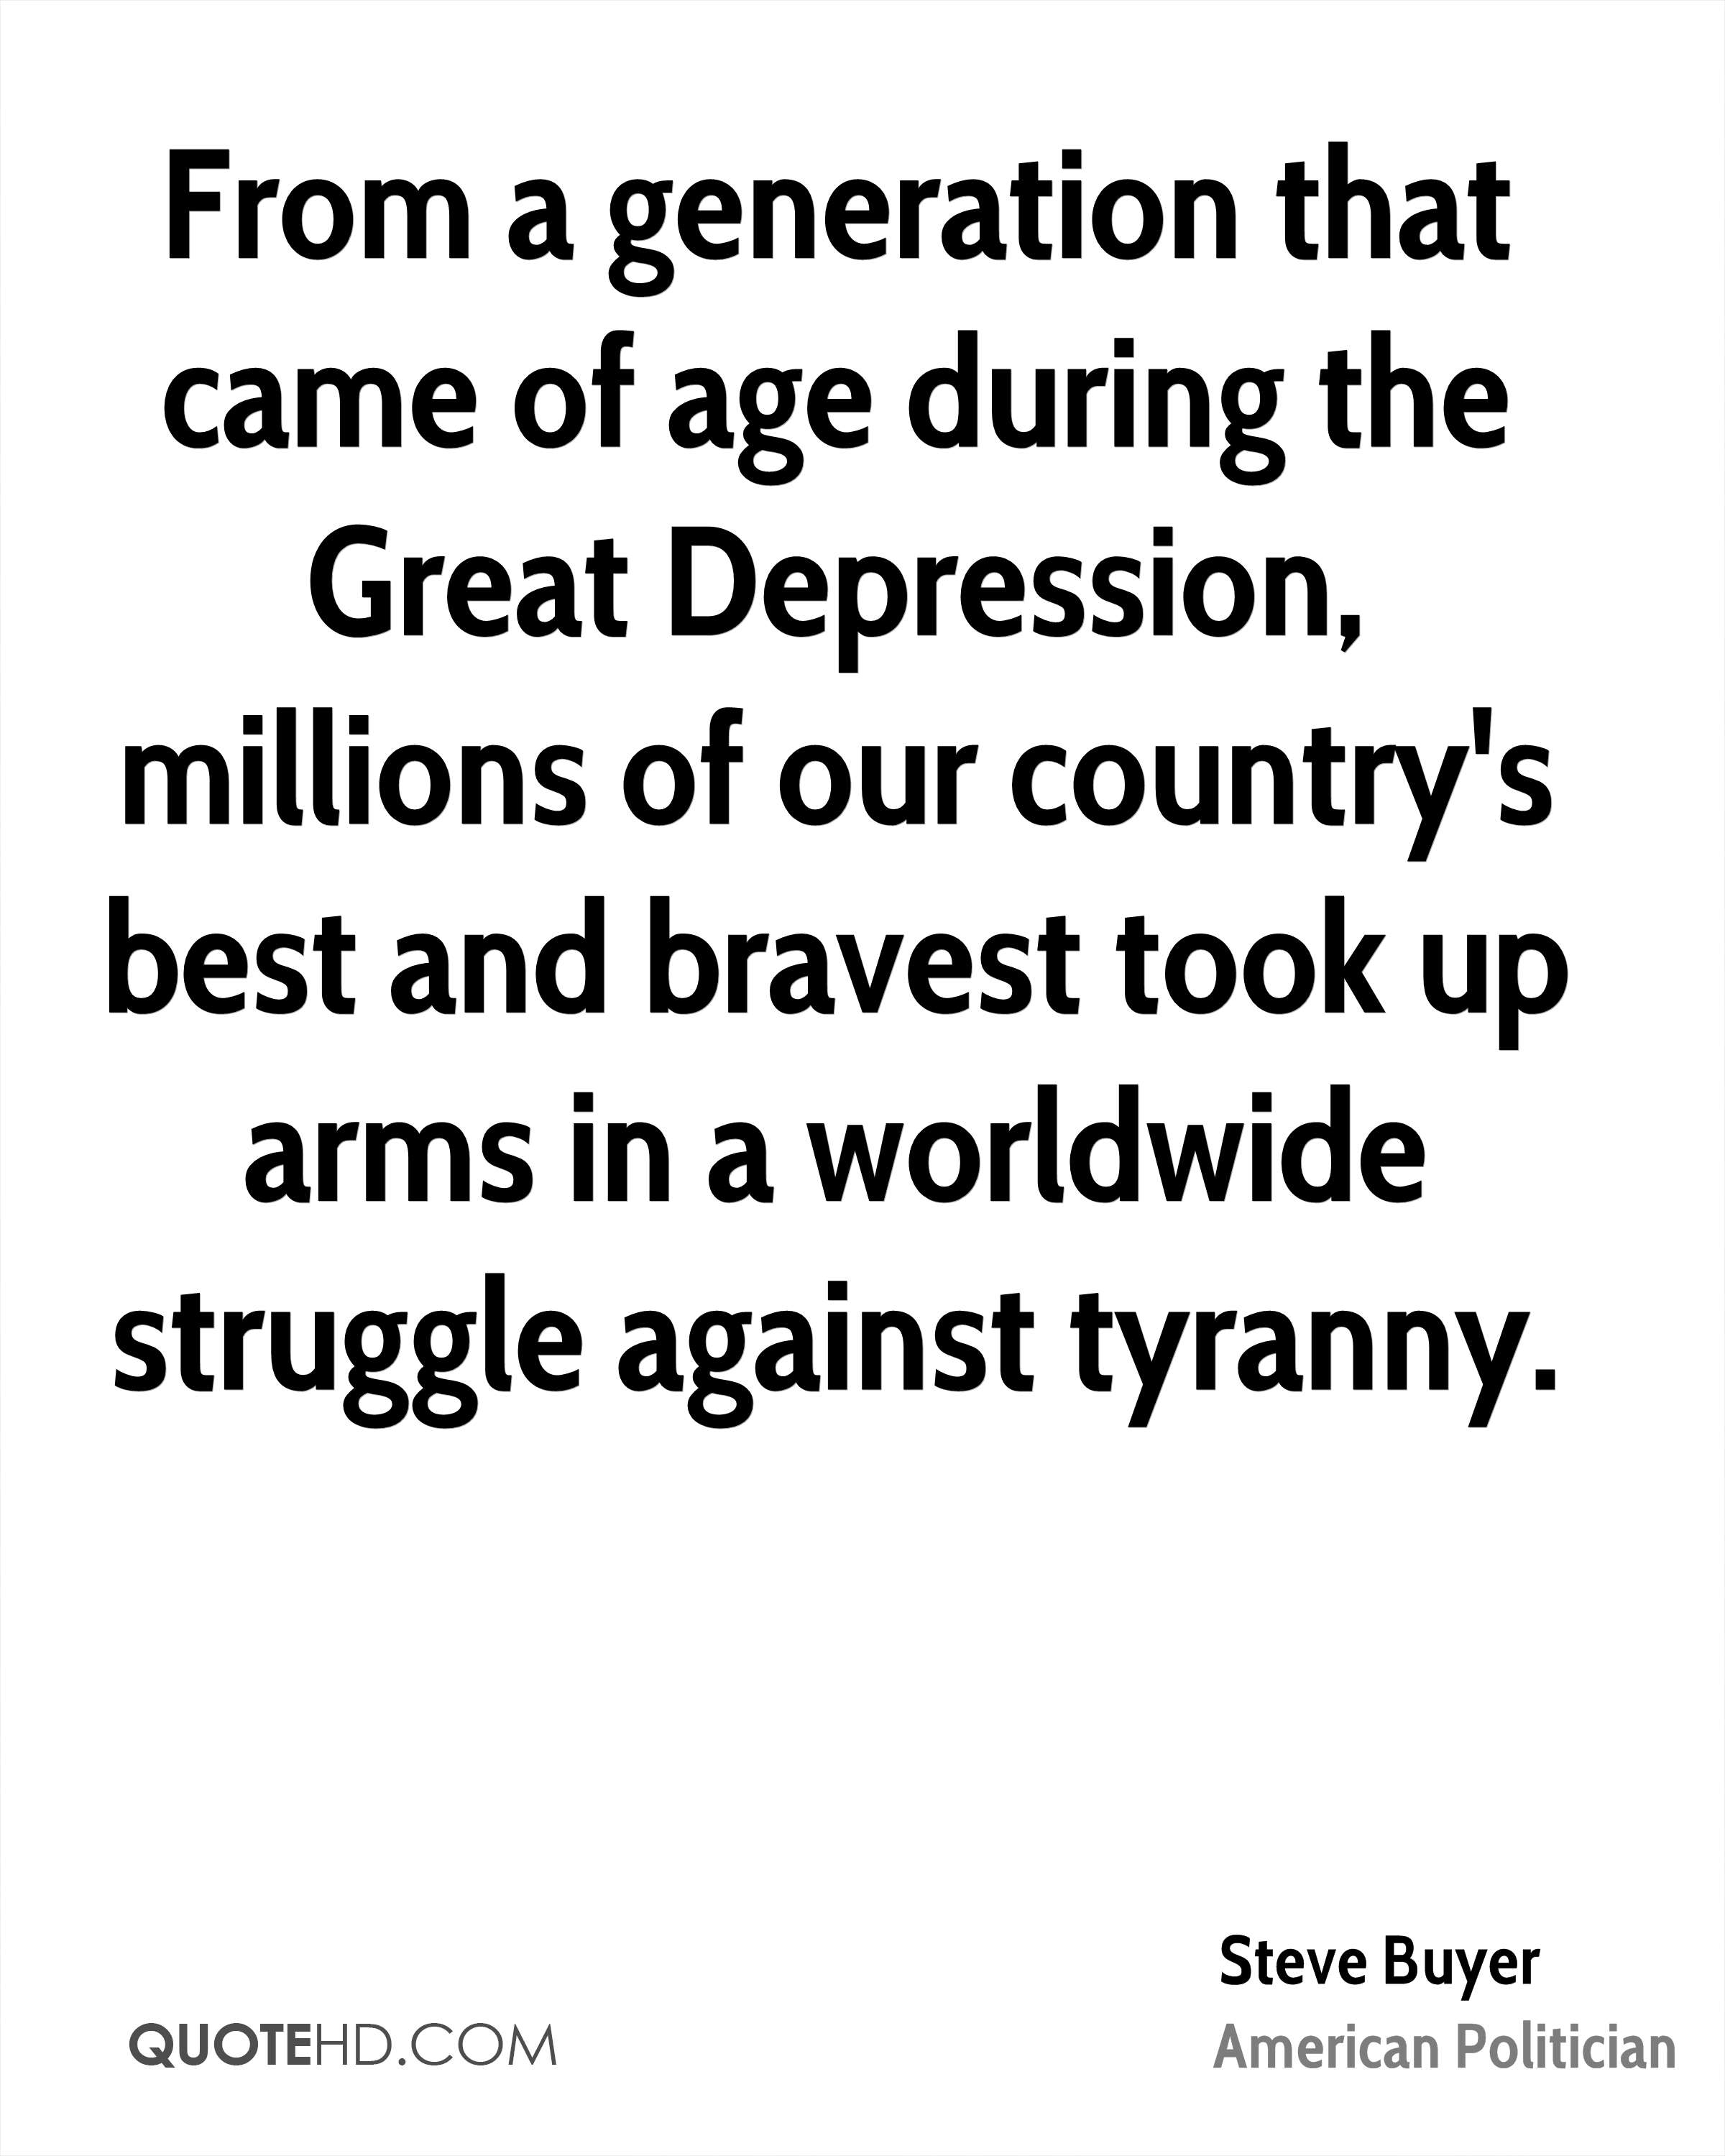 From a generation that came of age during the Great Depression, millions of our country's best and bravest took up arms in a worldwide struggle against tyranny.